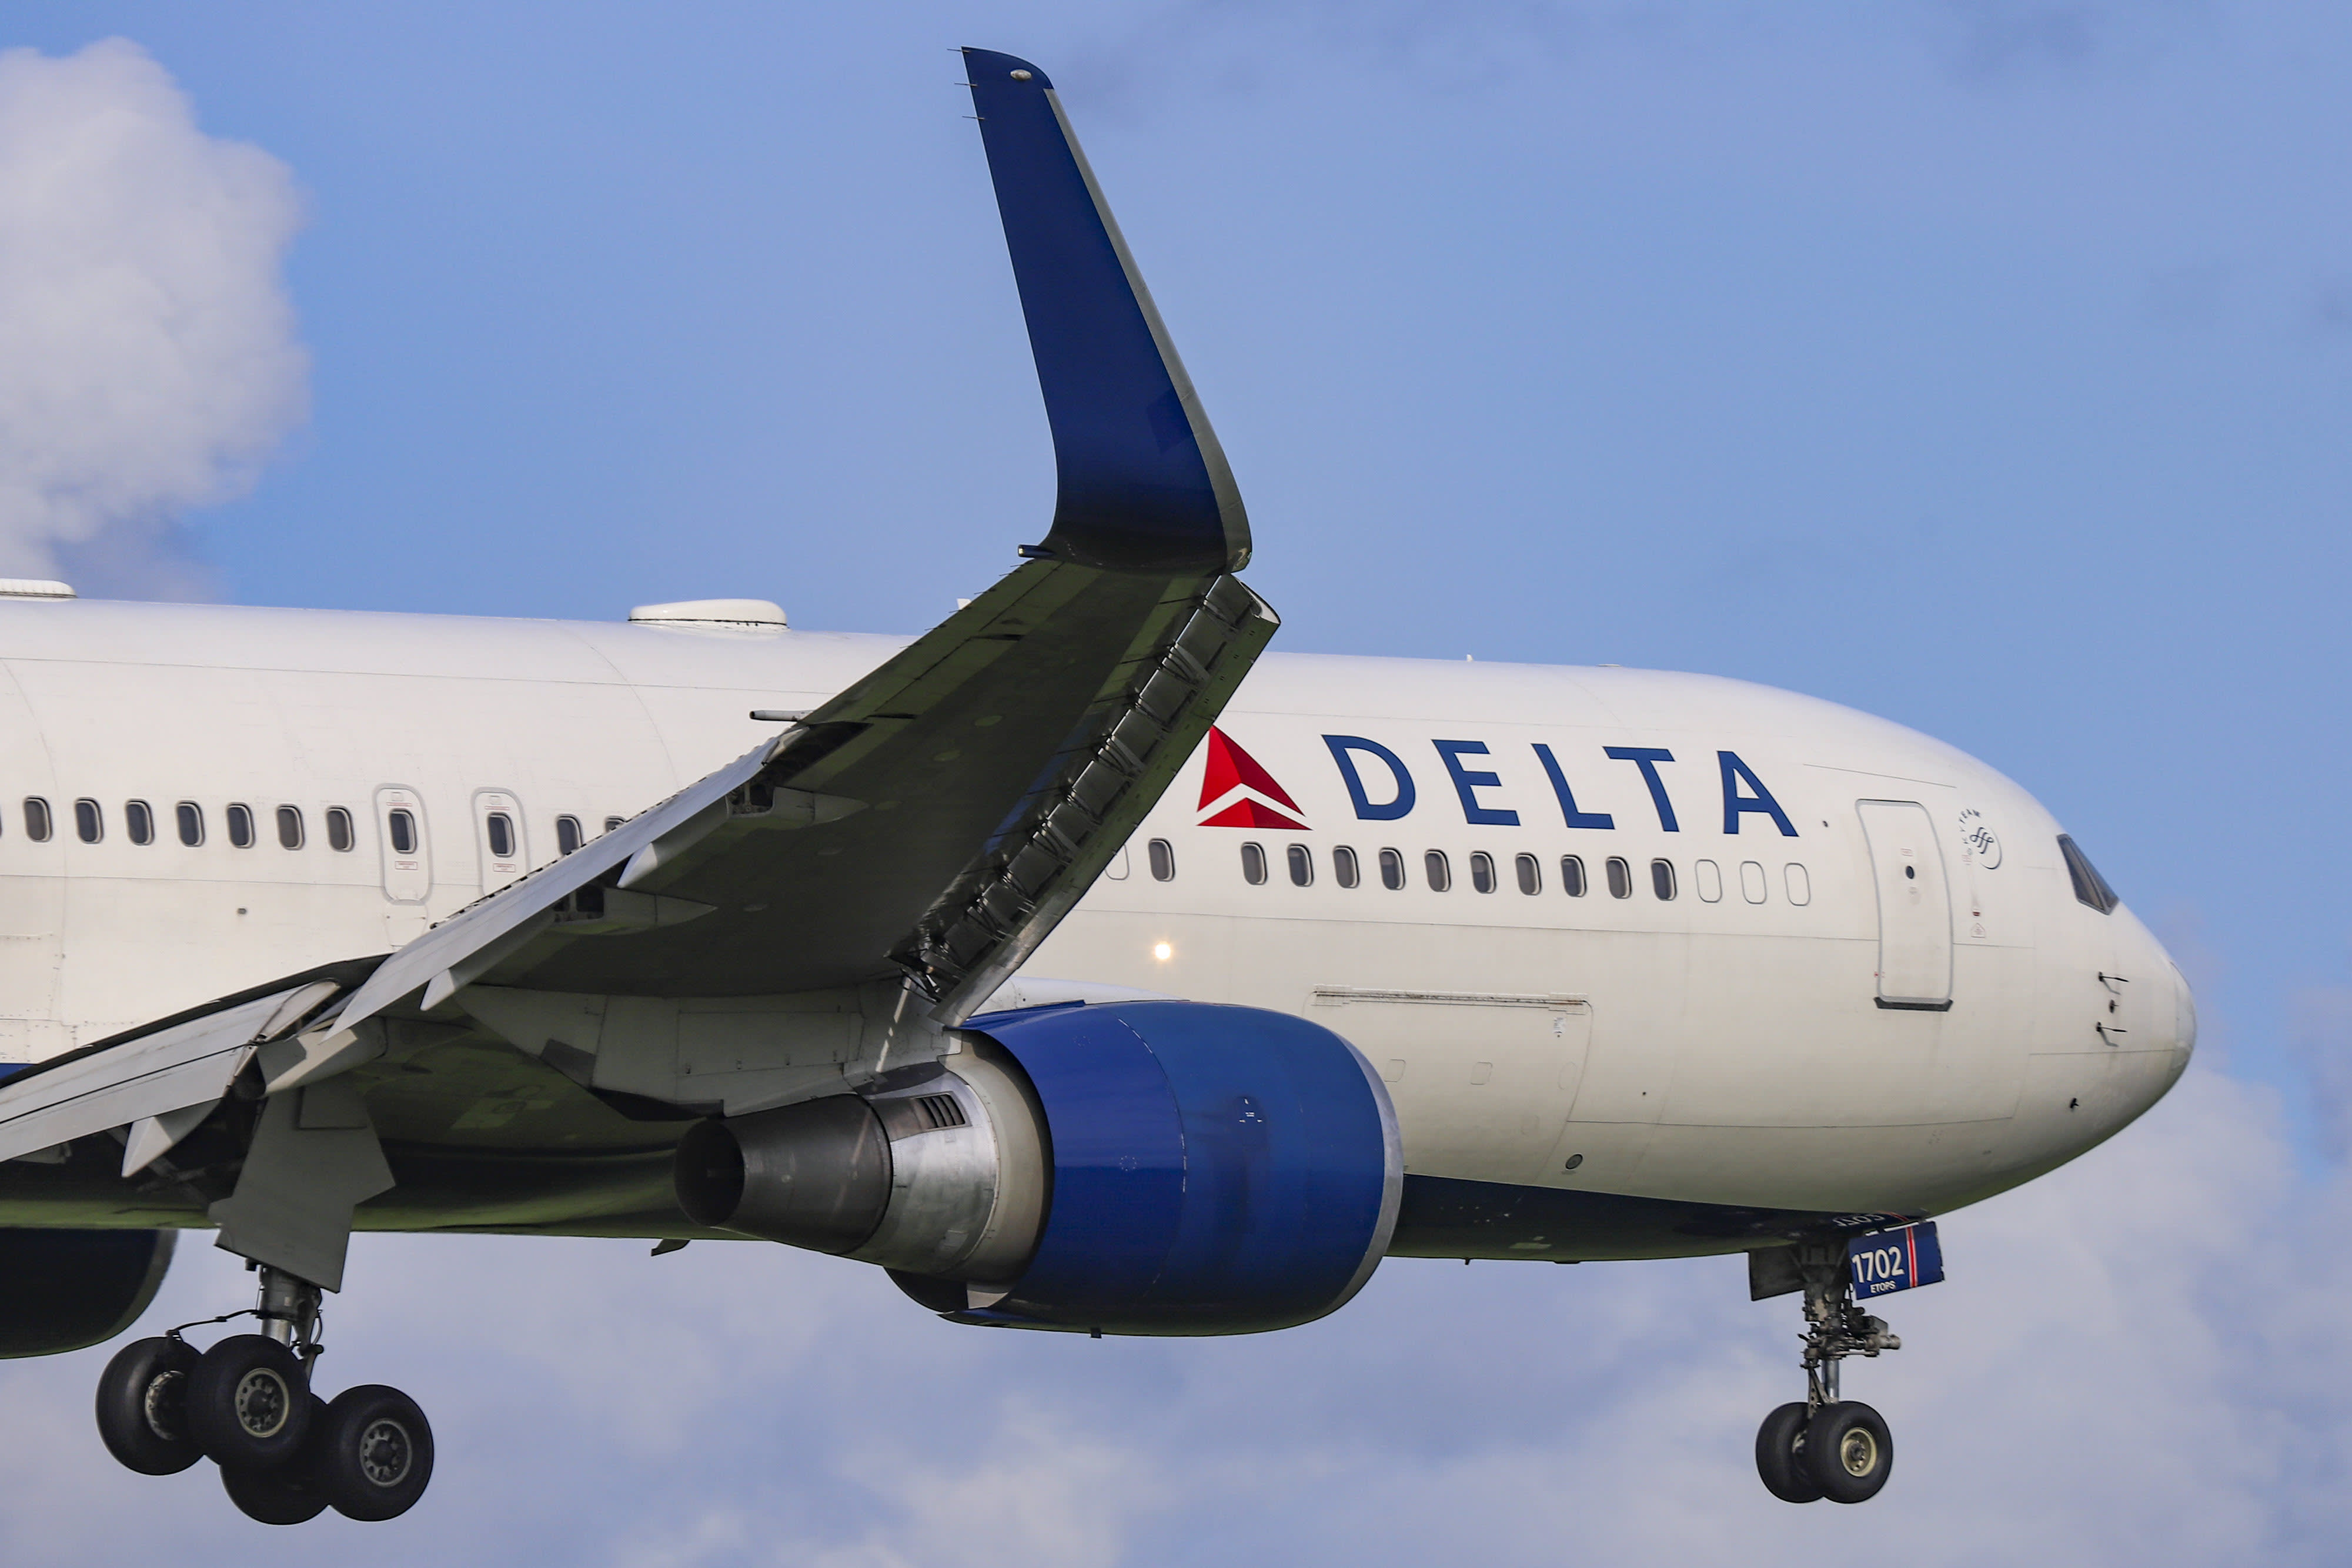 Delta is hiring 12,000 through 2020 as airline expands operations, CEO says